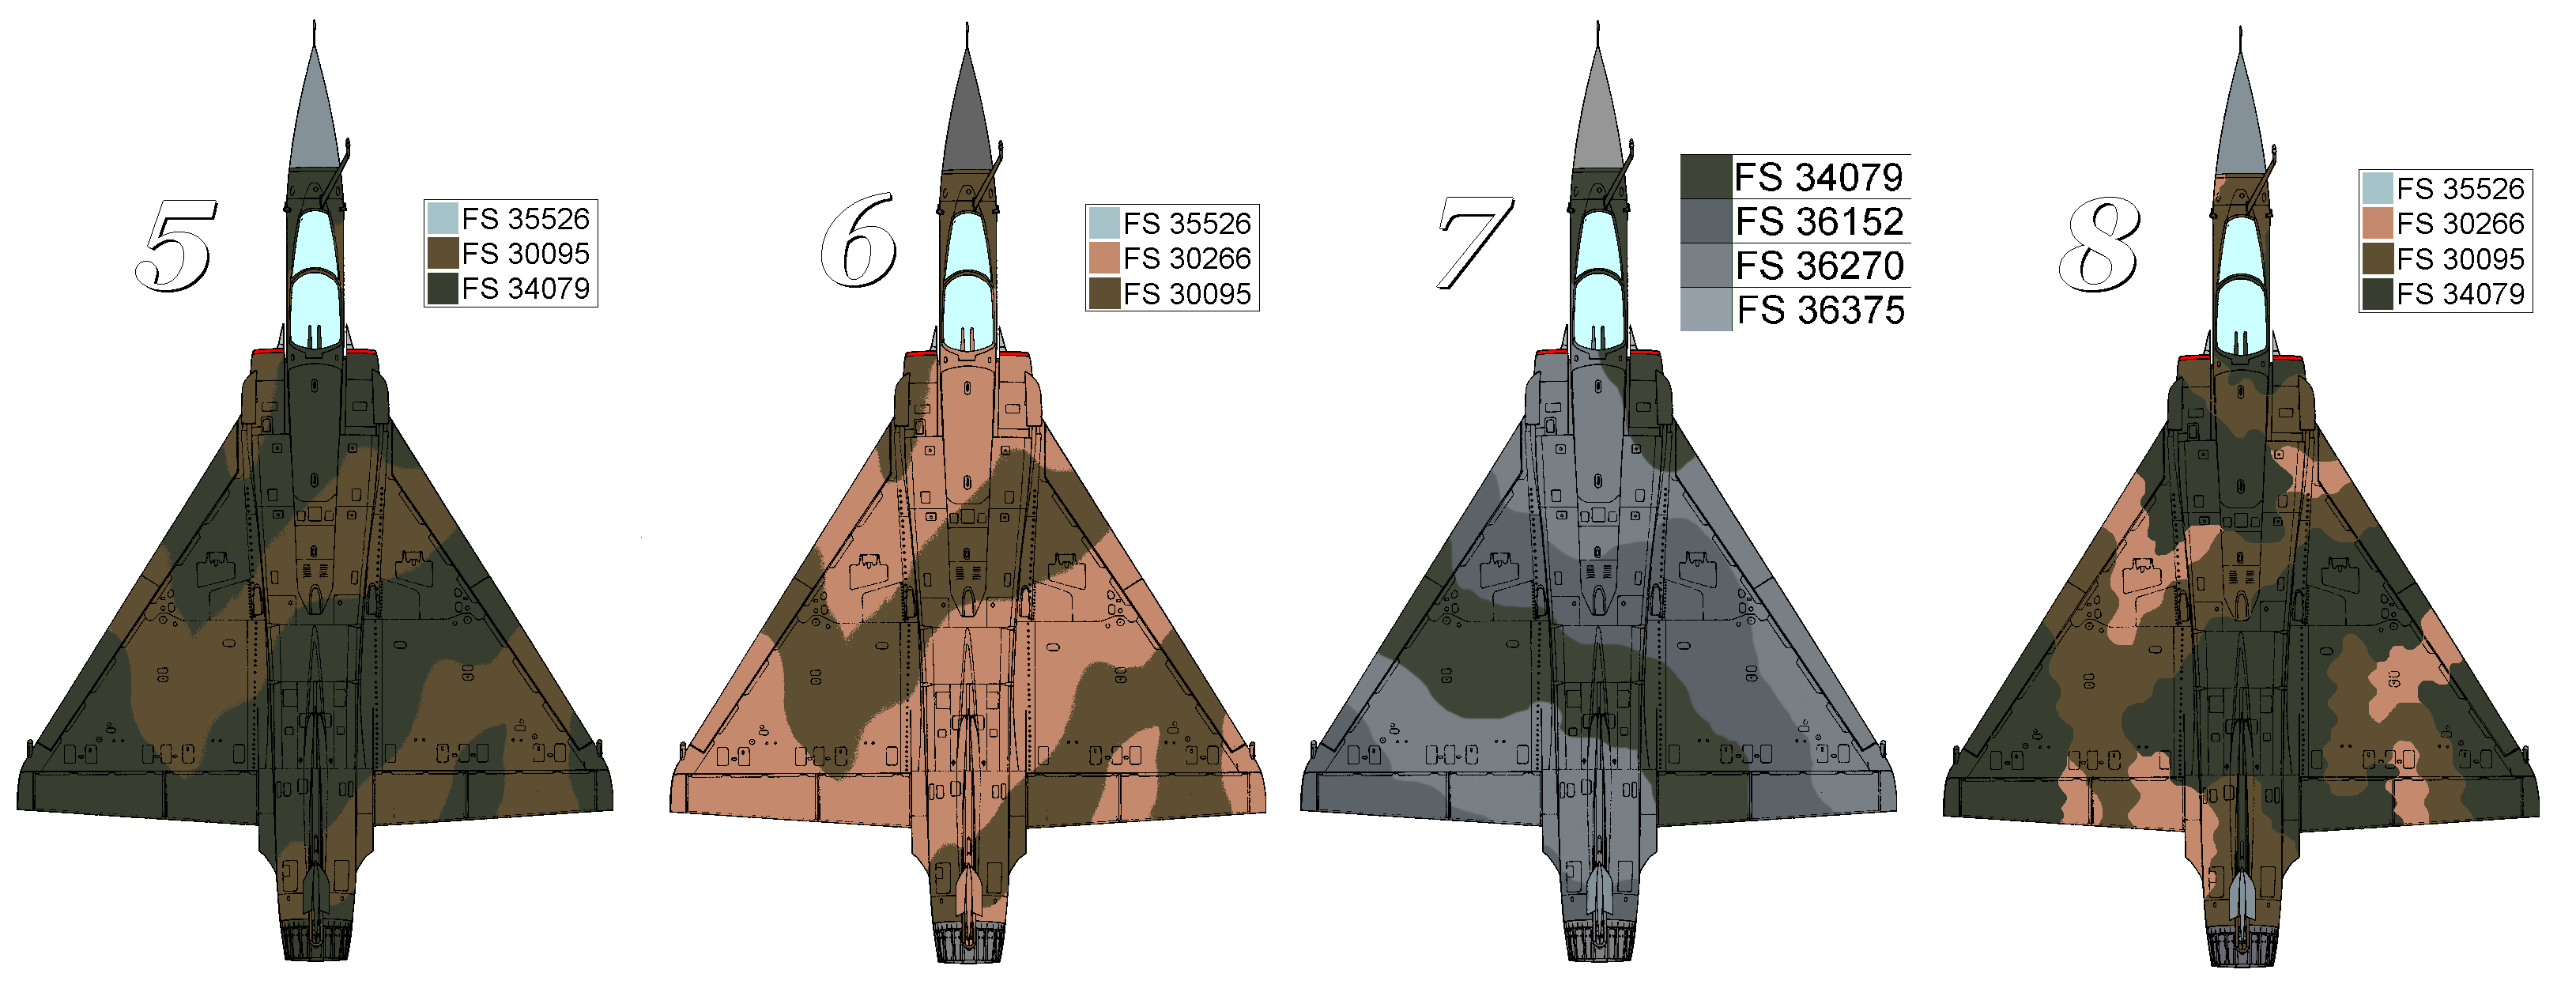 Mirage 2000 - tops2.png